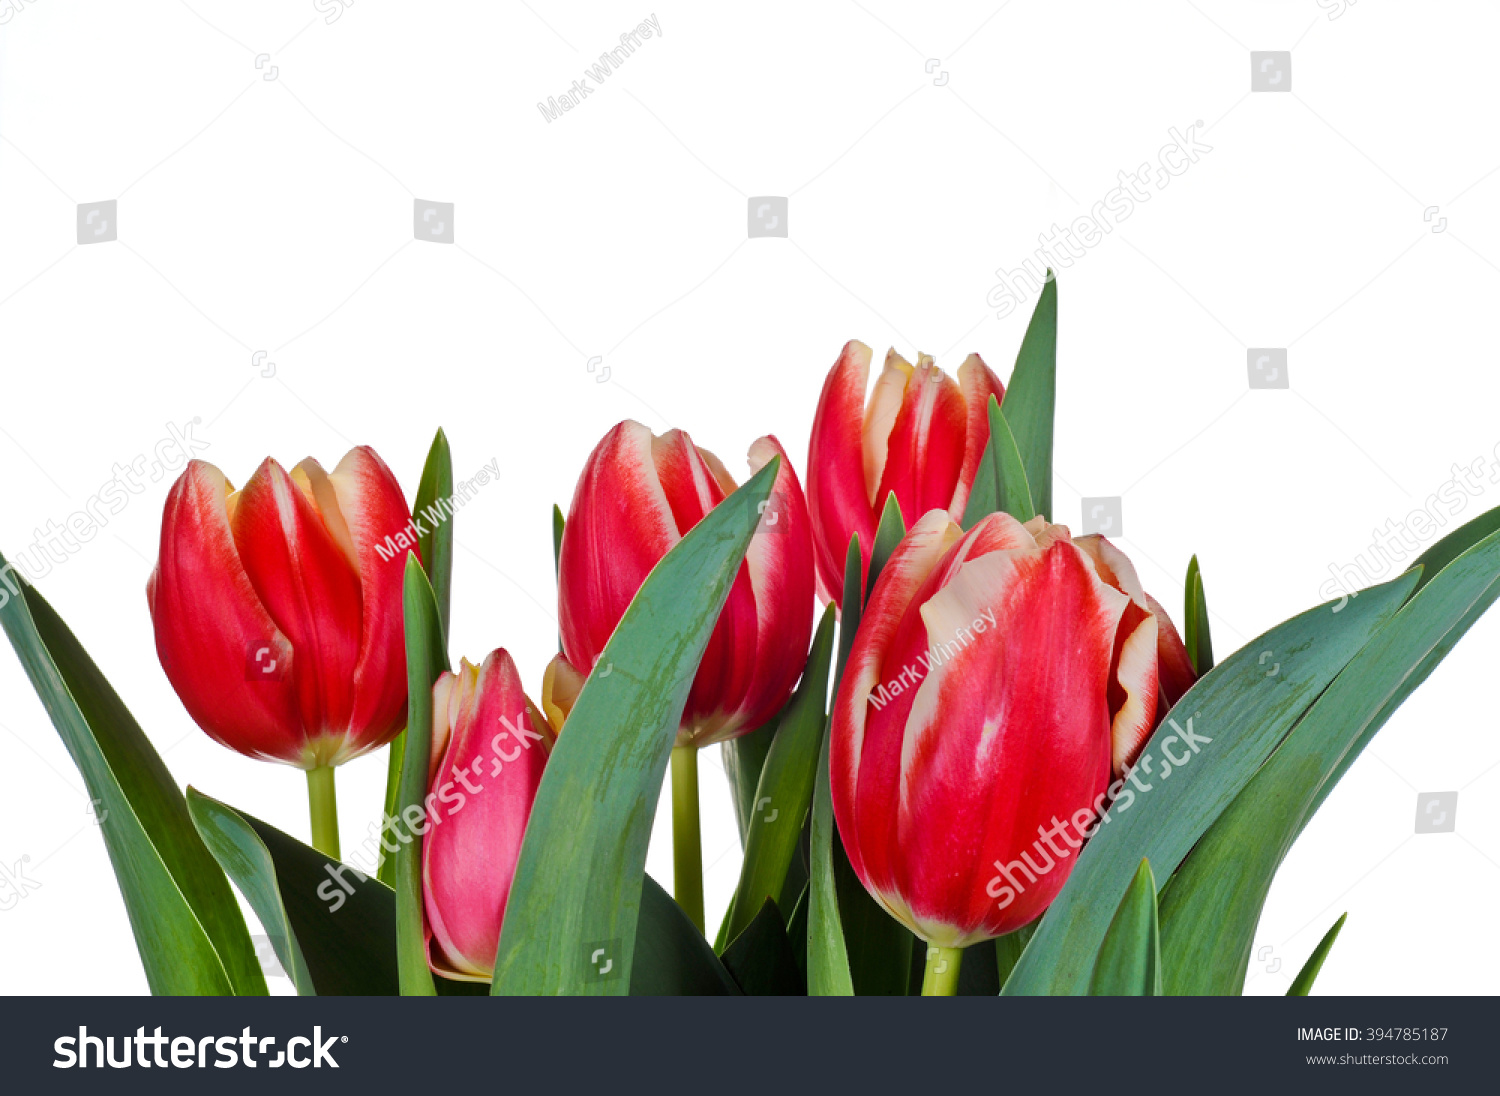 stock-photo-red-tulips-on-white-backgrou